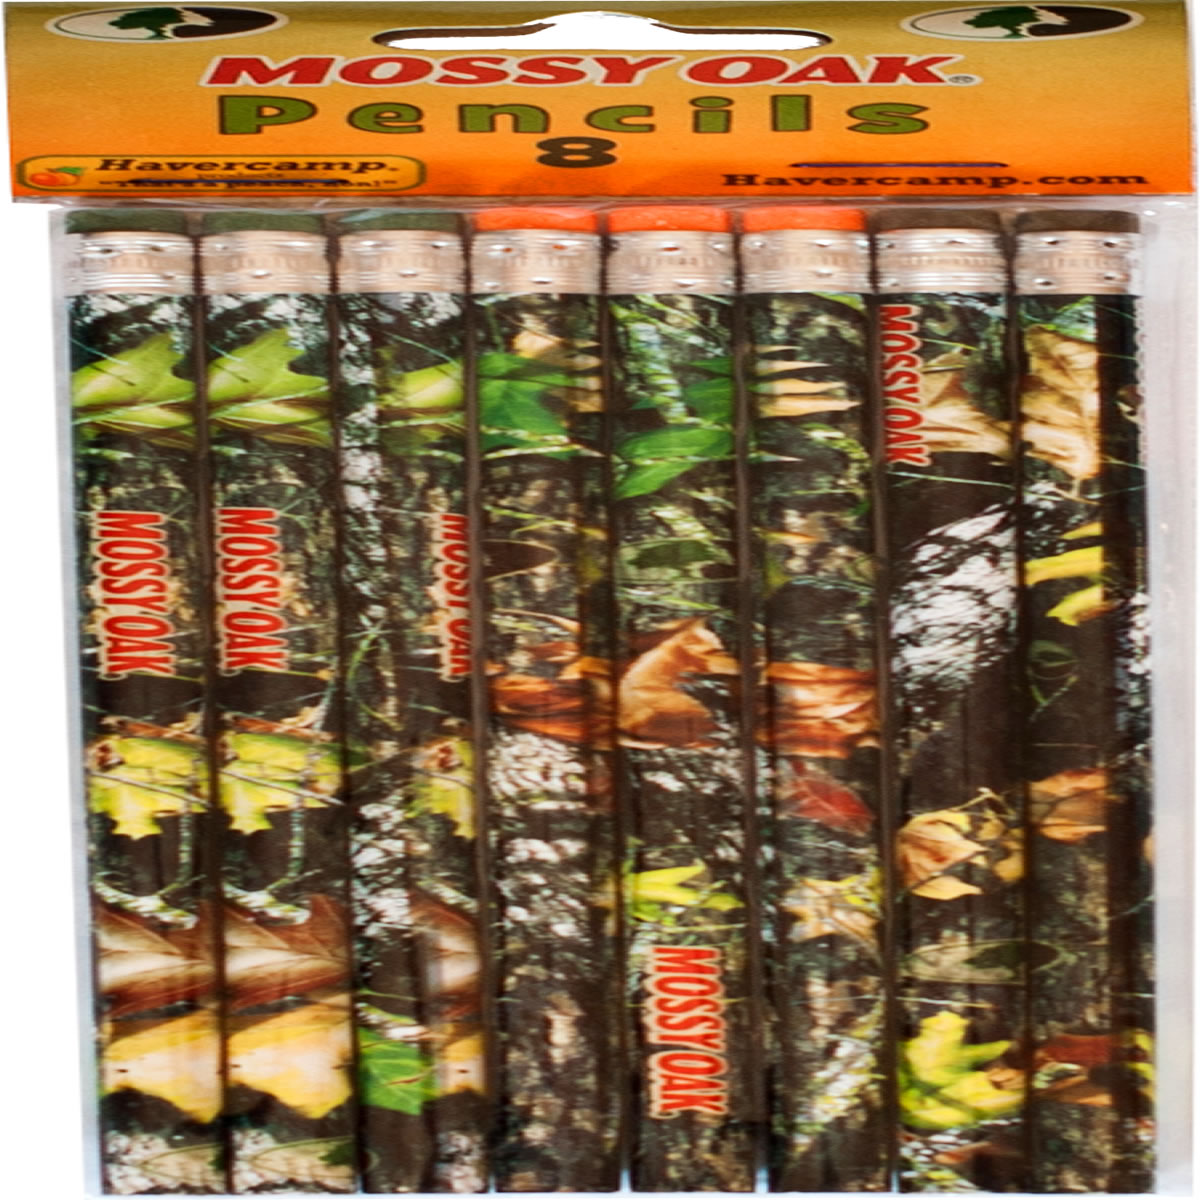 Mossy Oak Pencils - 8 Pack